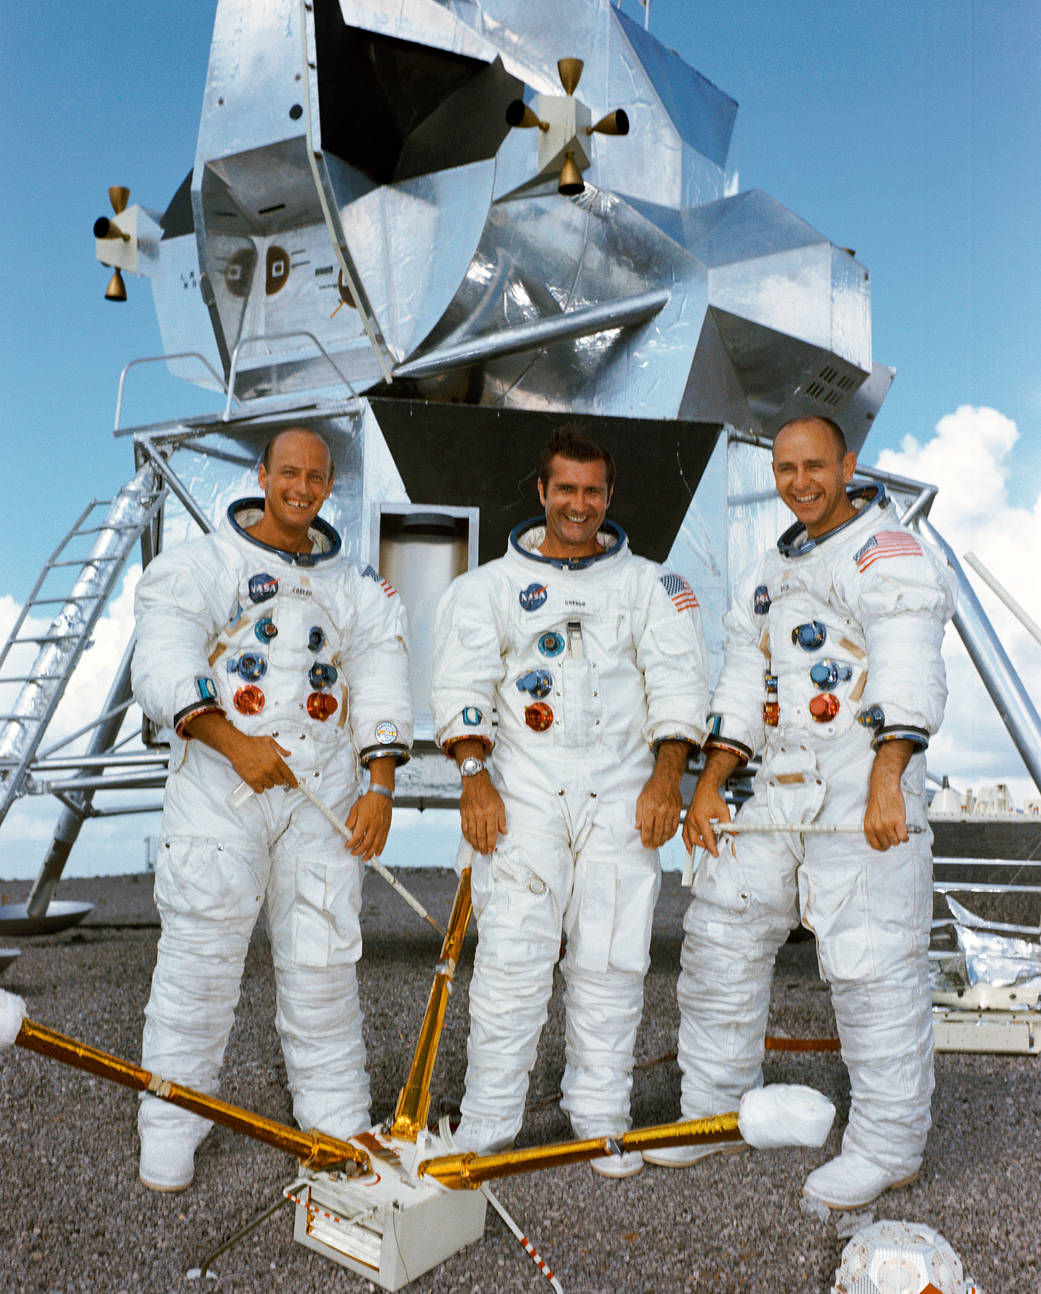 Apollo 12 crew portrait in spacesuits with lunar lander mockup